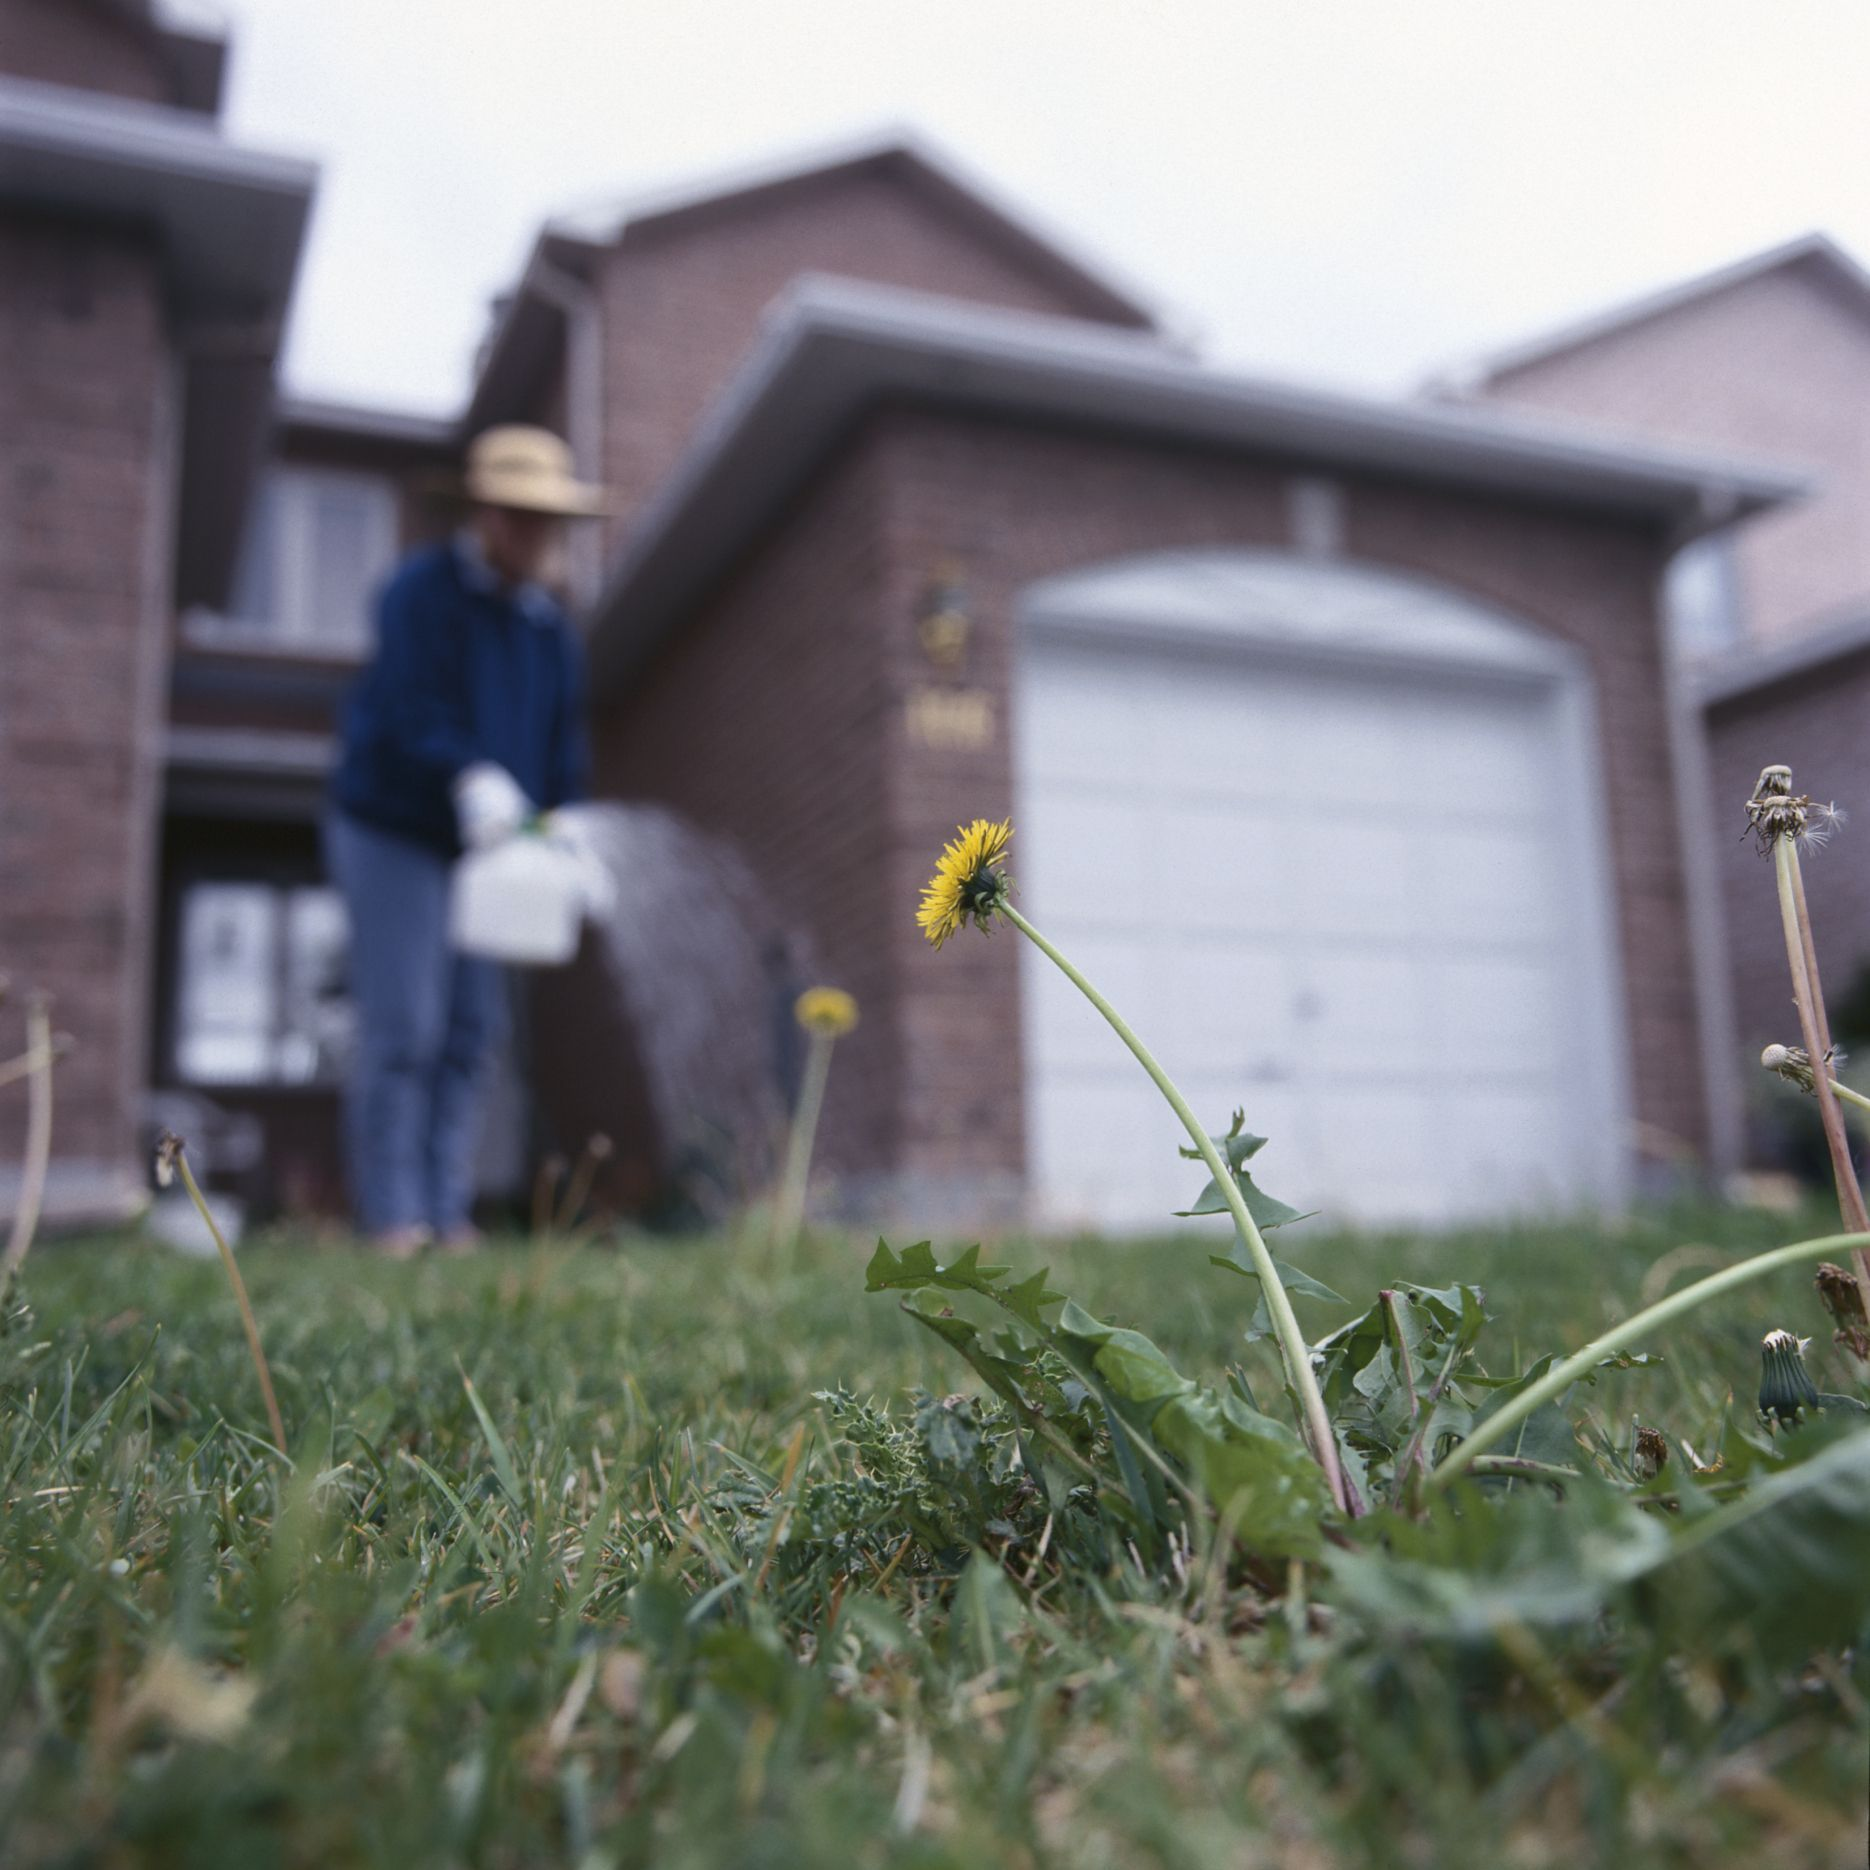 Salt and water mixture to kill weeds in grass and flowers weed